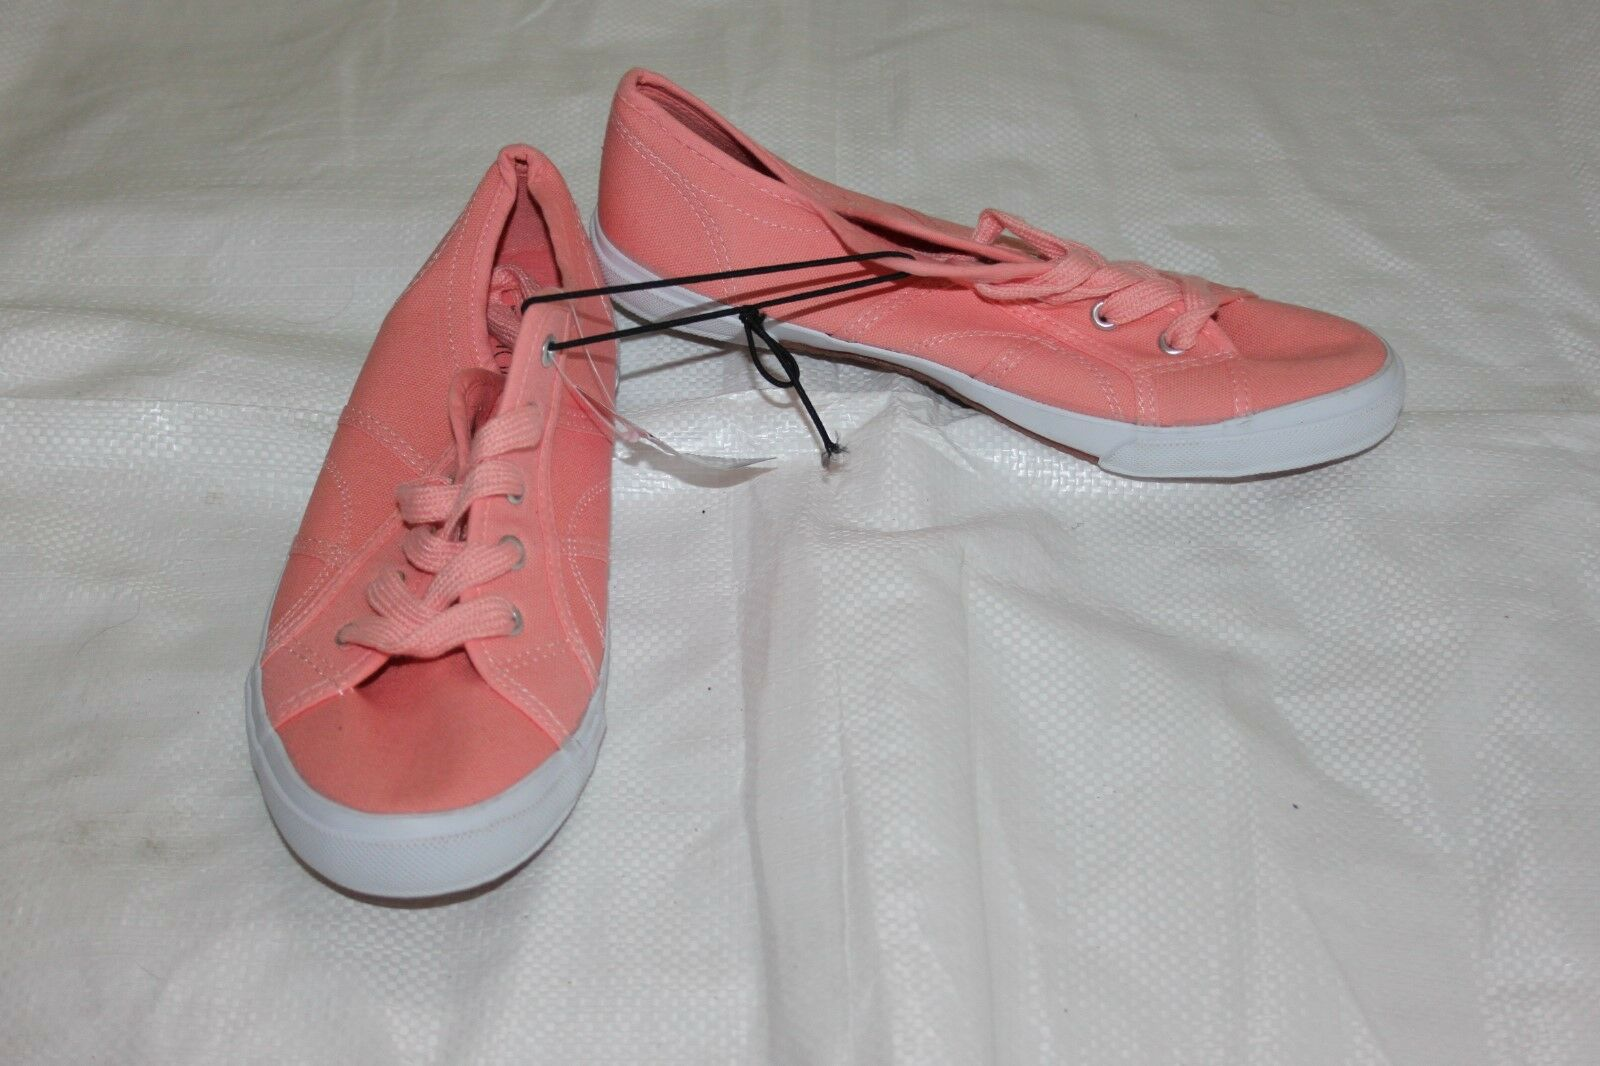 Ladies New Pink Trainers Size Fiore 41 Pump Shoes by Fiore Size be1c89